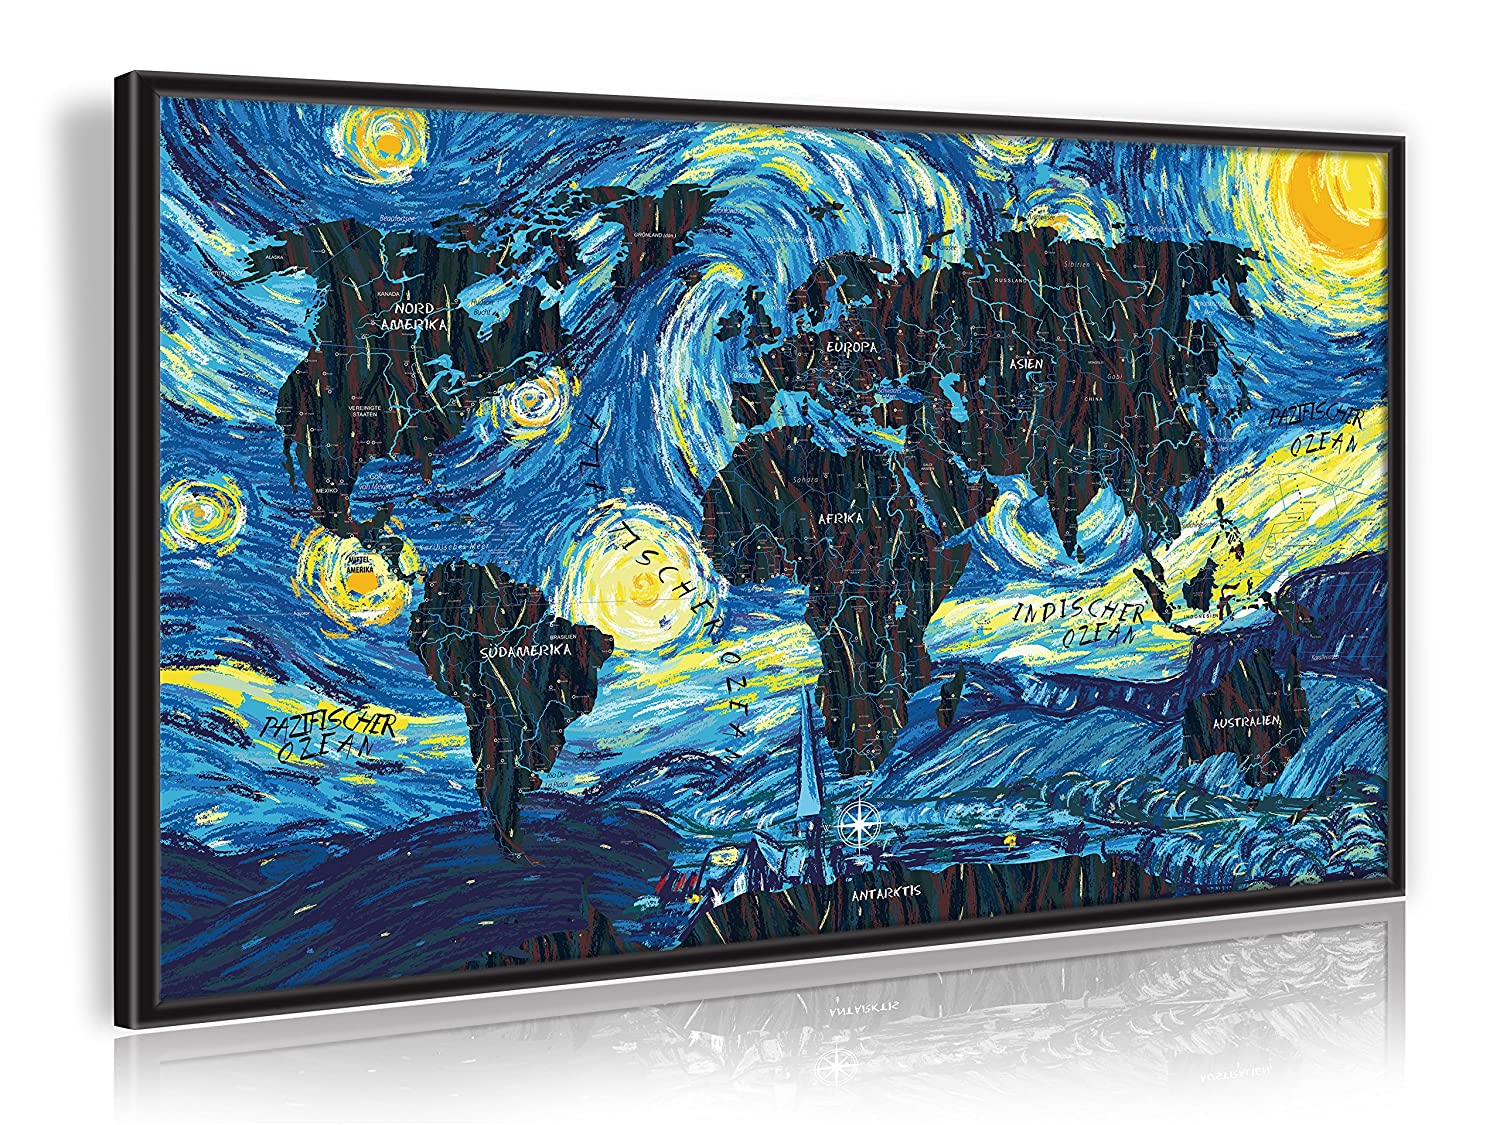 Amazon.de: PinnArt Vincent van Gogh - The Starry Night - Art-Design ...